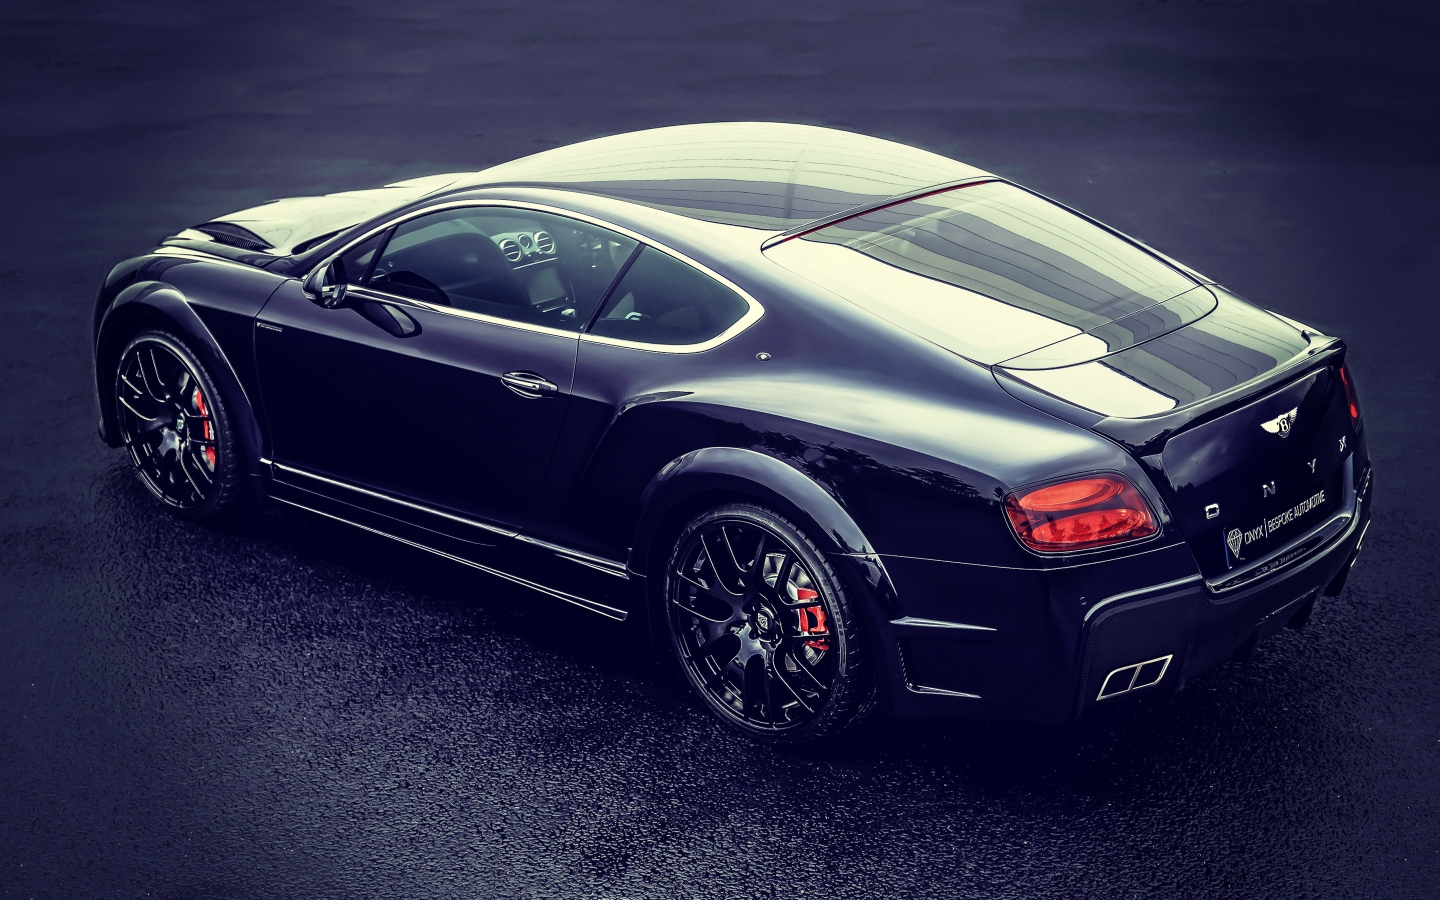 Onyx Bentley Continental Concept for 1440 x 900 widescreen resolution